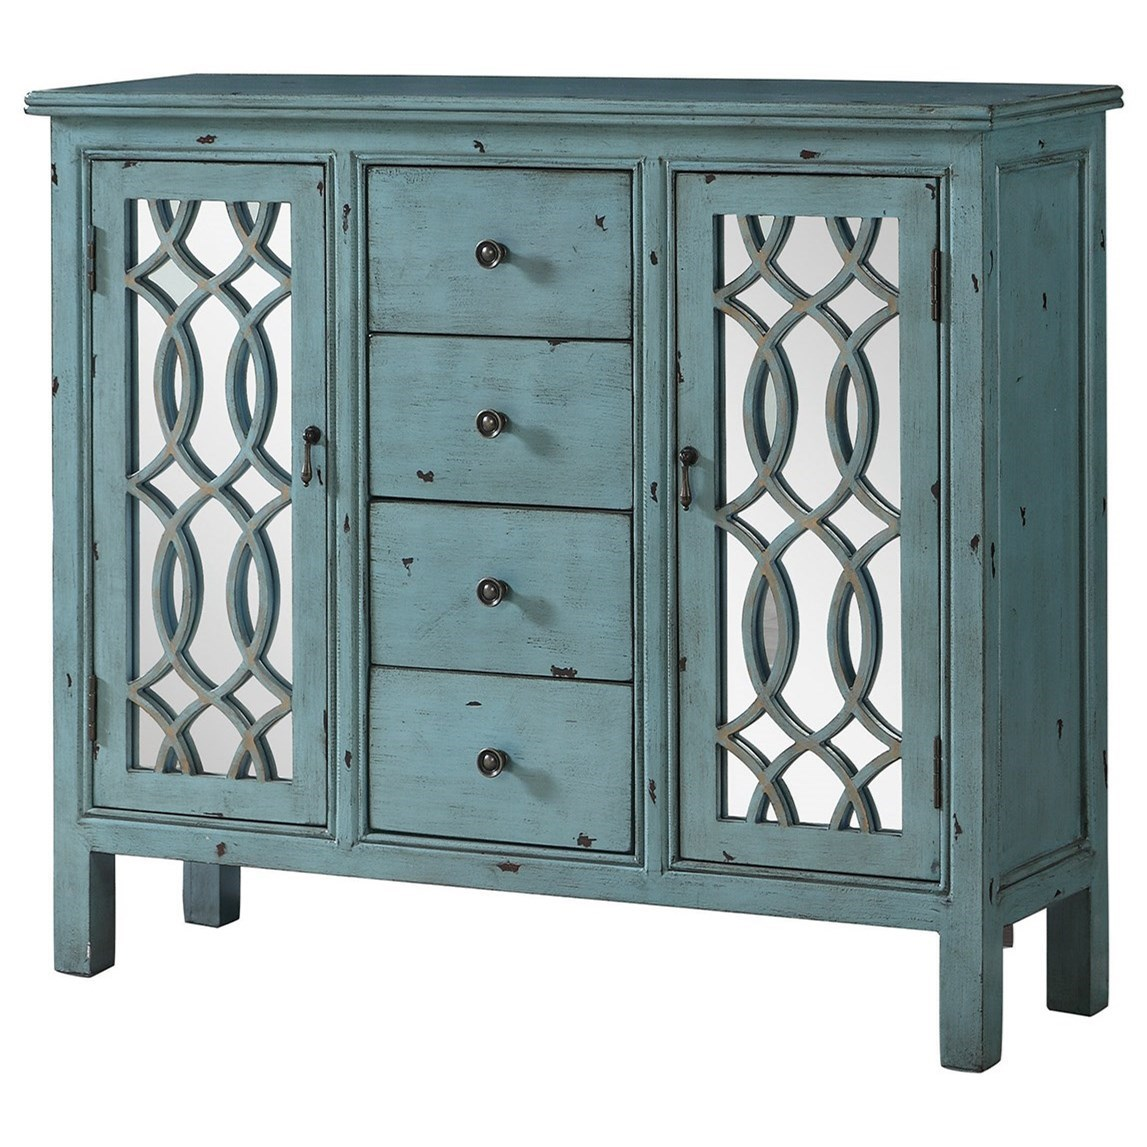 coaster accent cabinets antique blue table with inlay door products color pottery barn bedside childrens nic furniture whangarei inch round outdoor tablecloth console espresso